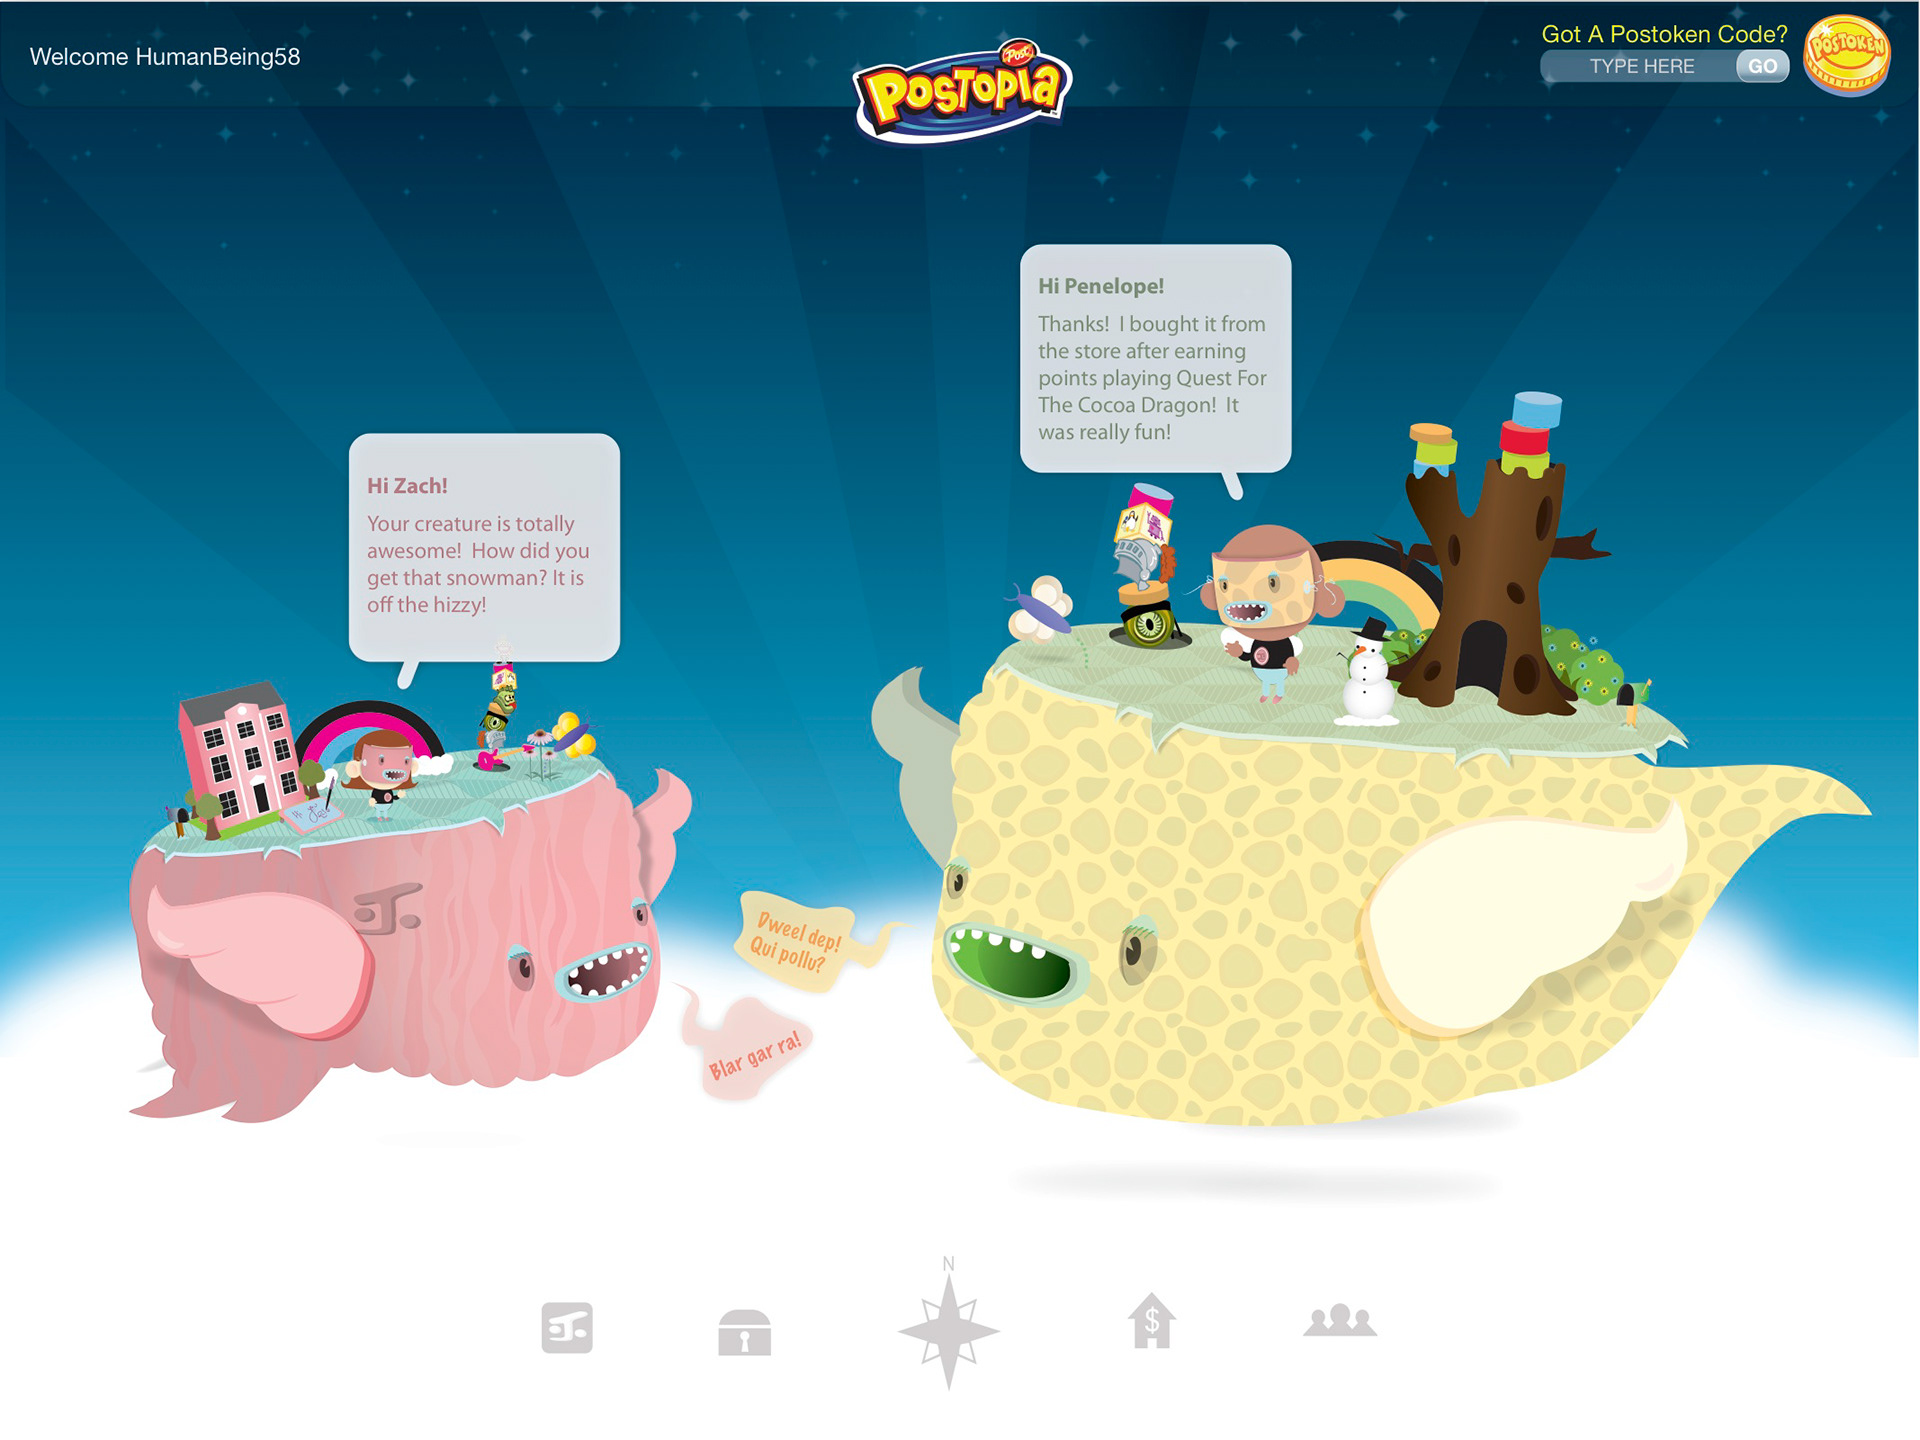 Here Is A Close Up Of An Exchange Between User Creatures Note That They Have Collected Various Trophies And Decorations From Their Activities On The Site